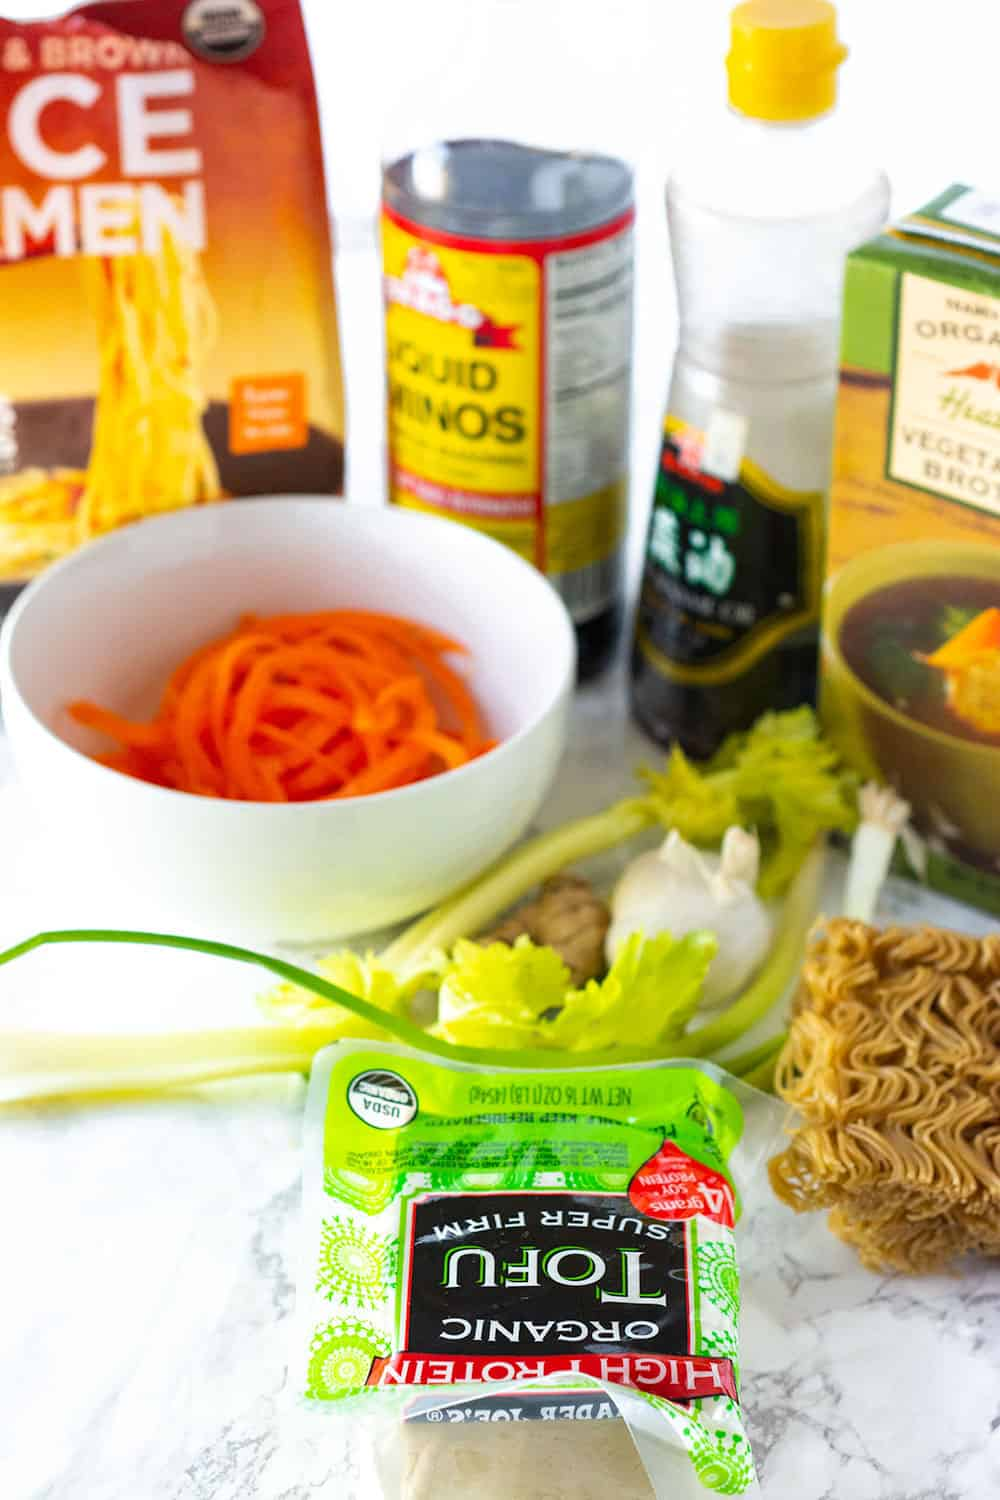 Vegan Gluten-Free Ramen Noodles Ingredients